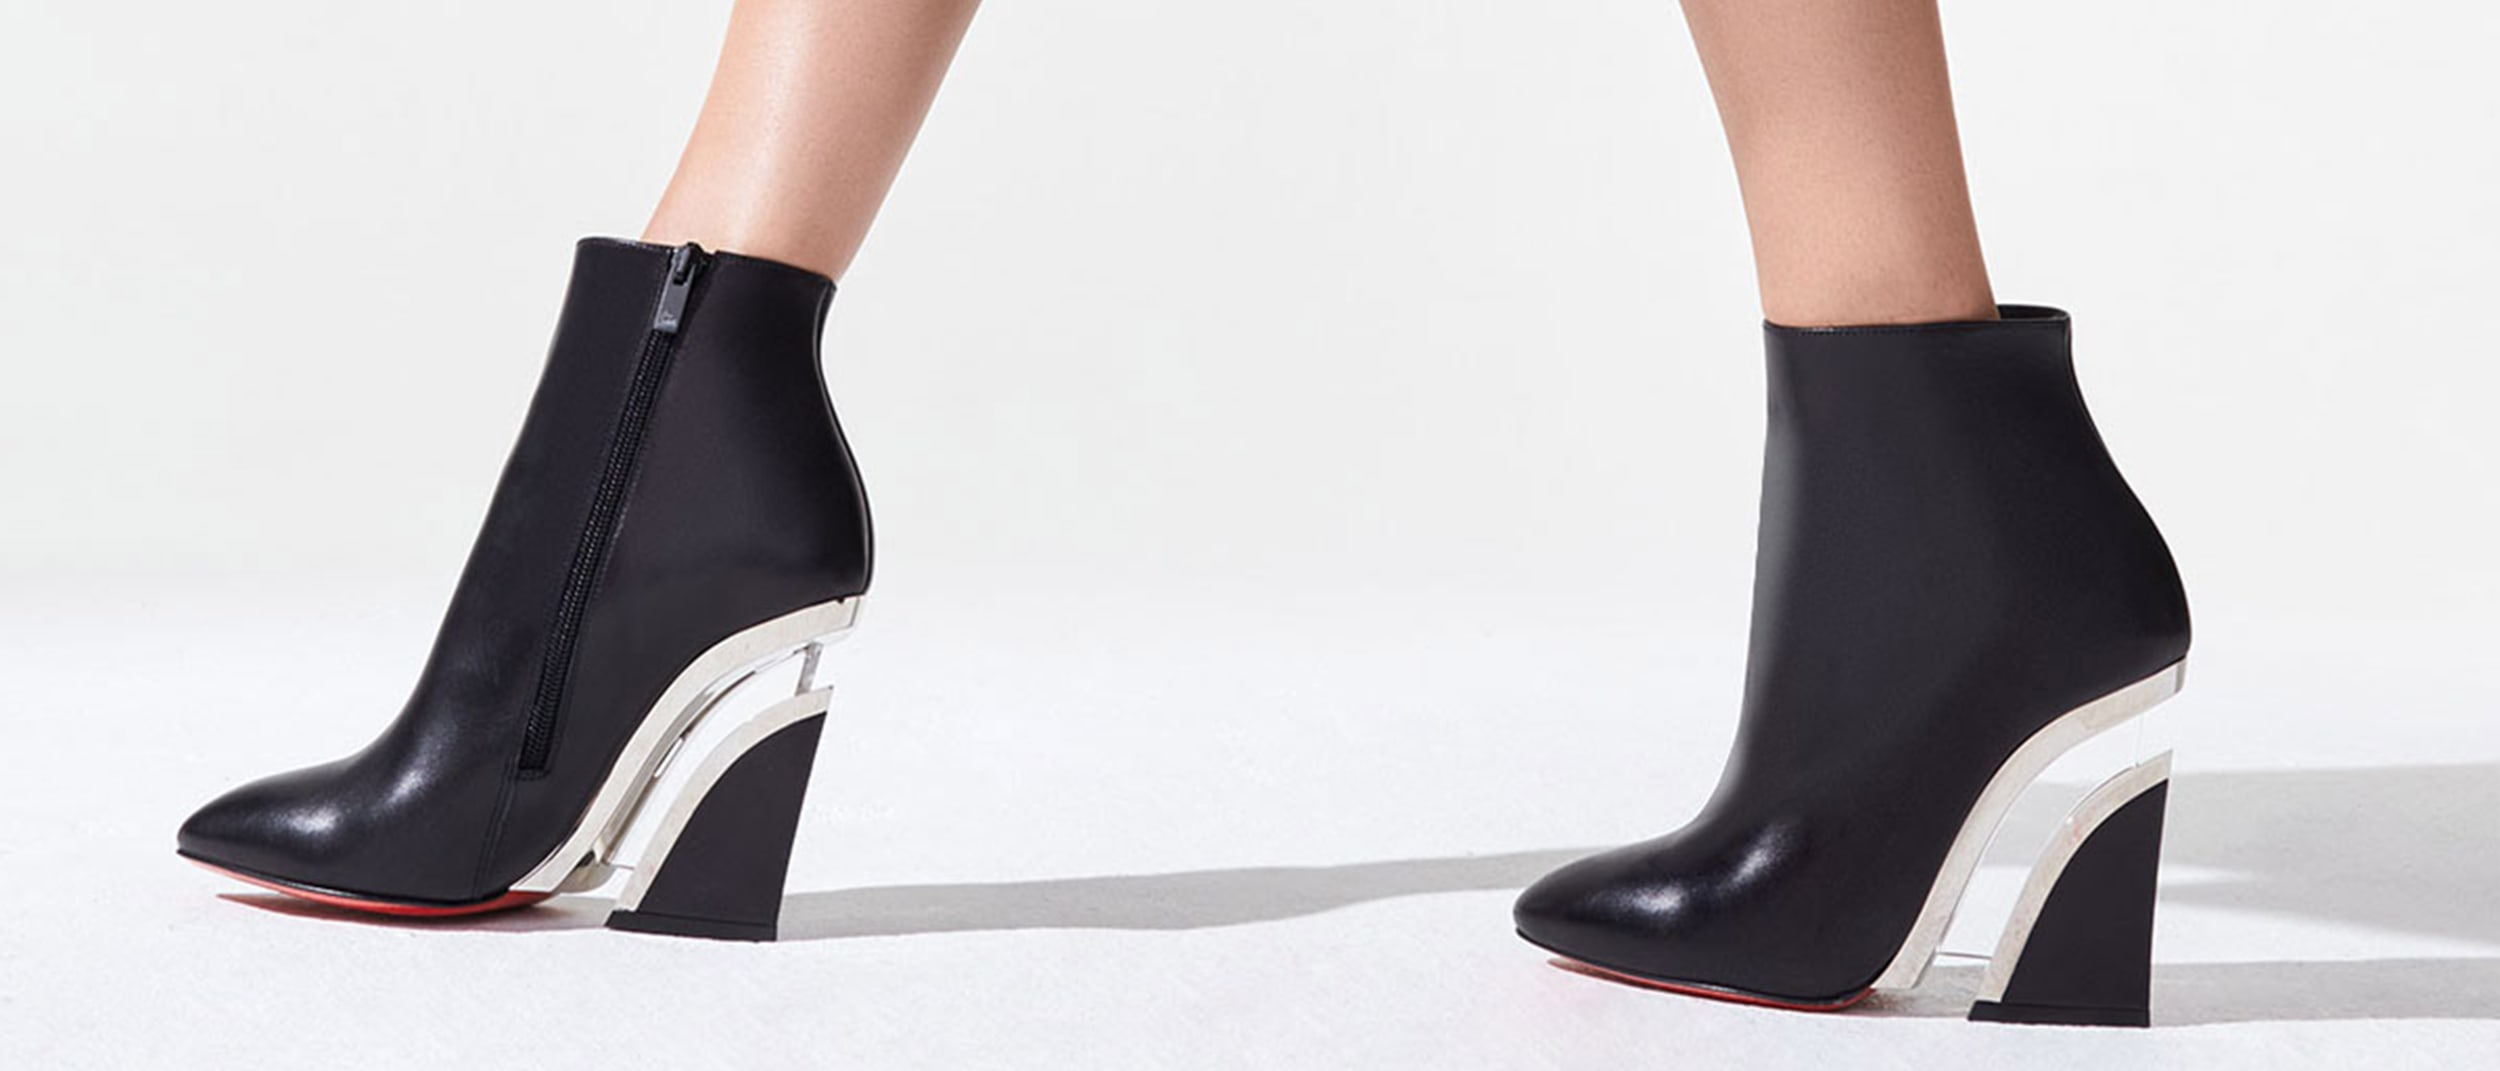 Winter trend update: The boots you'll be wearing in 2020